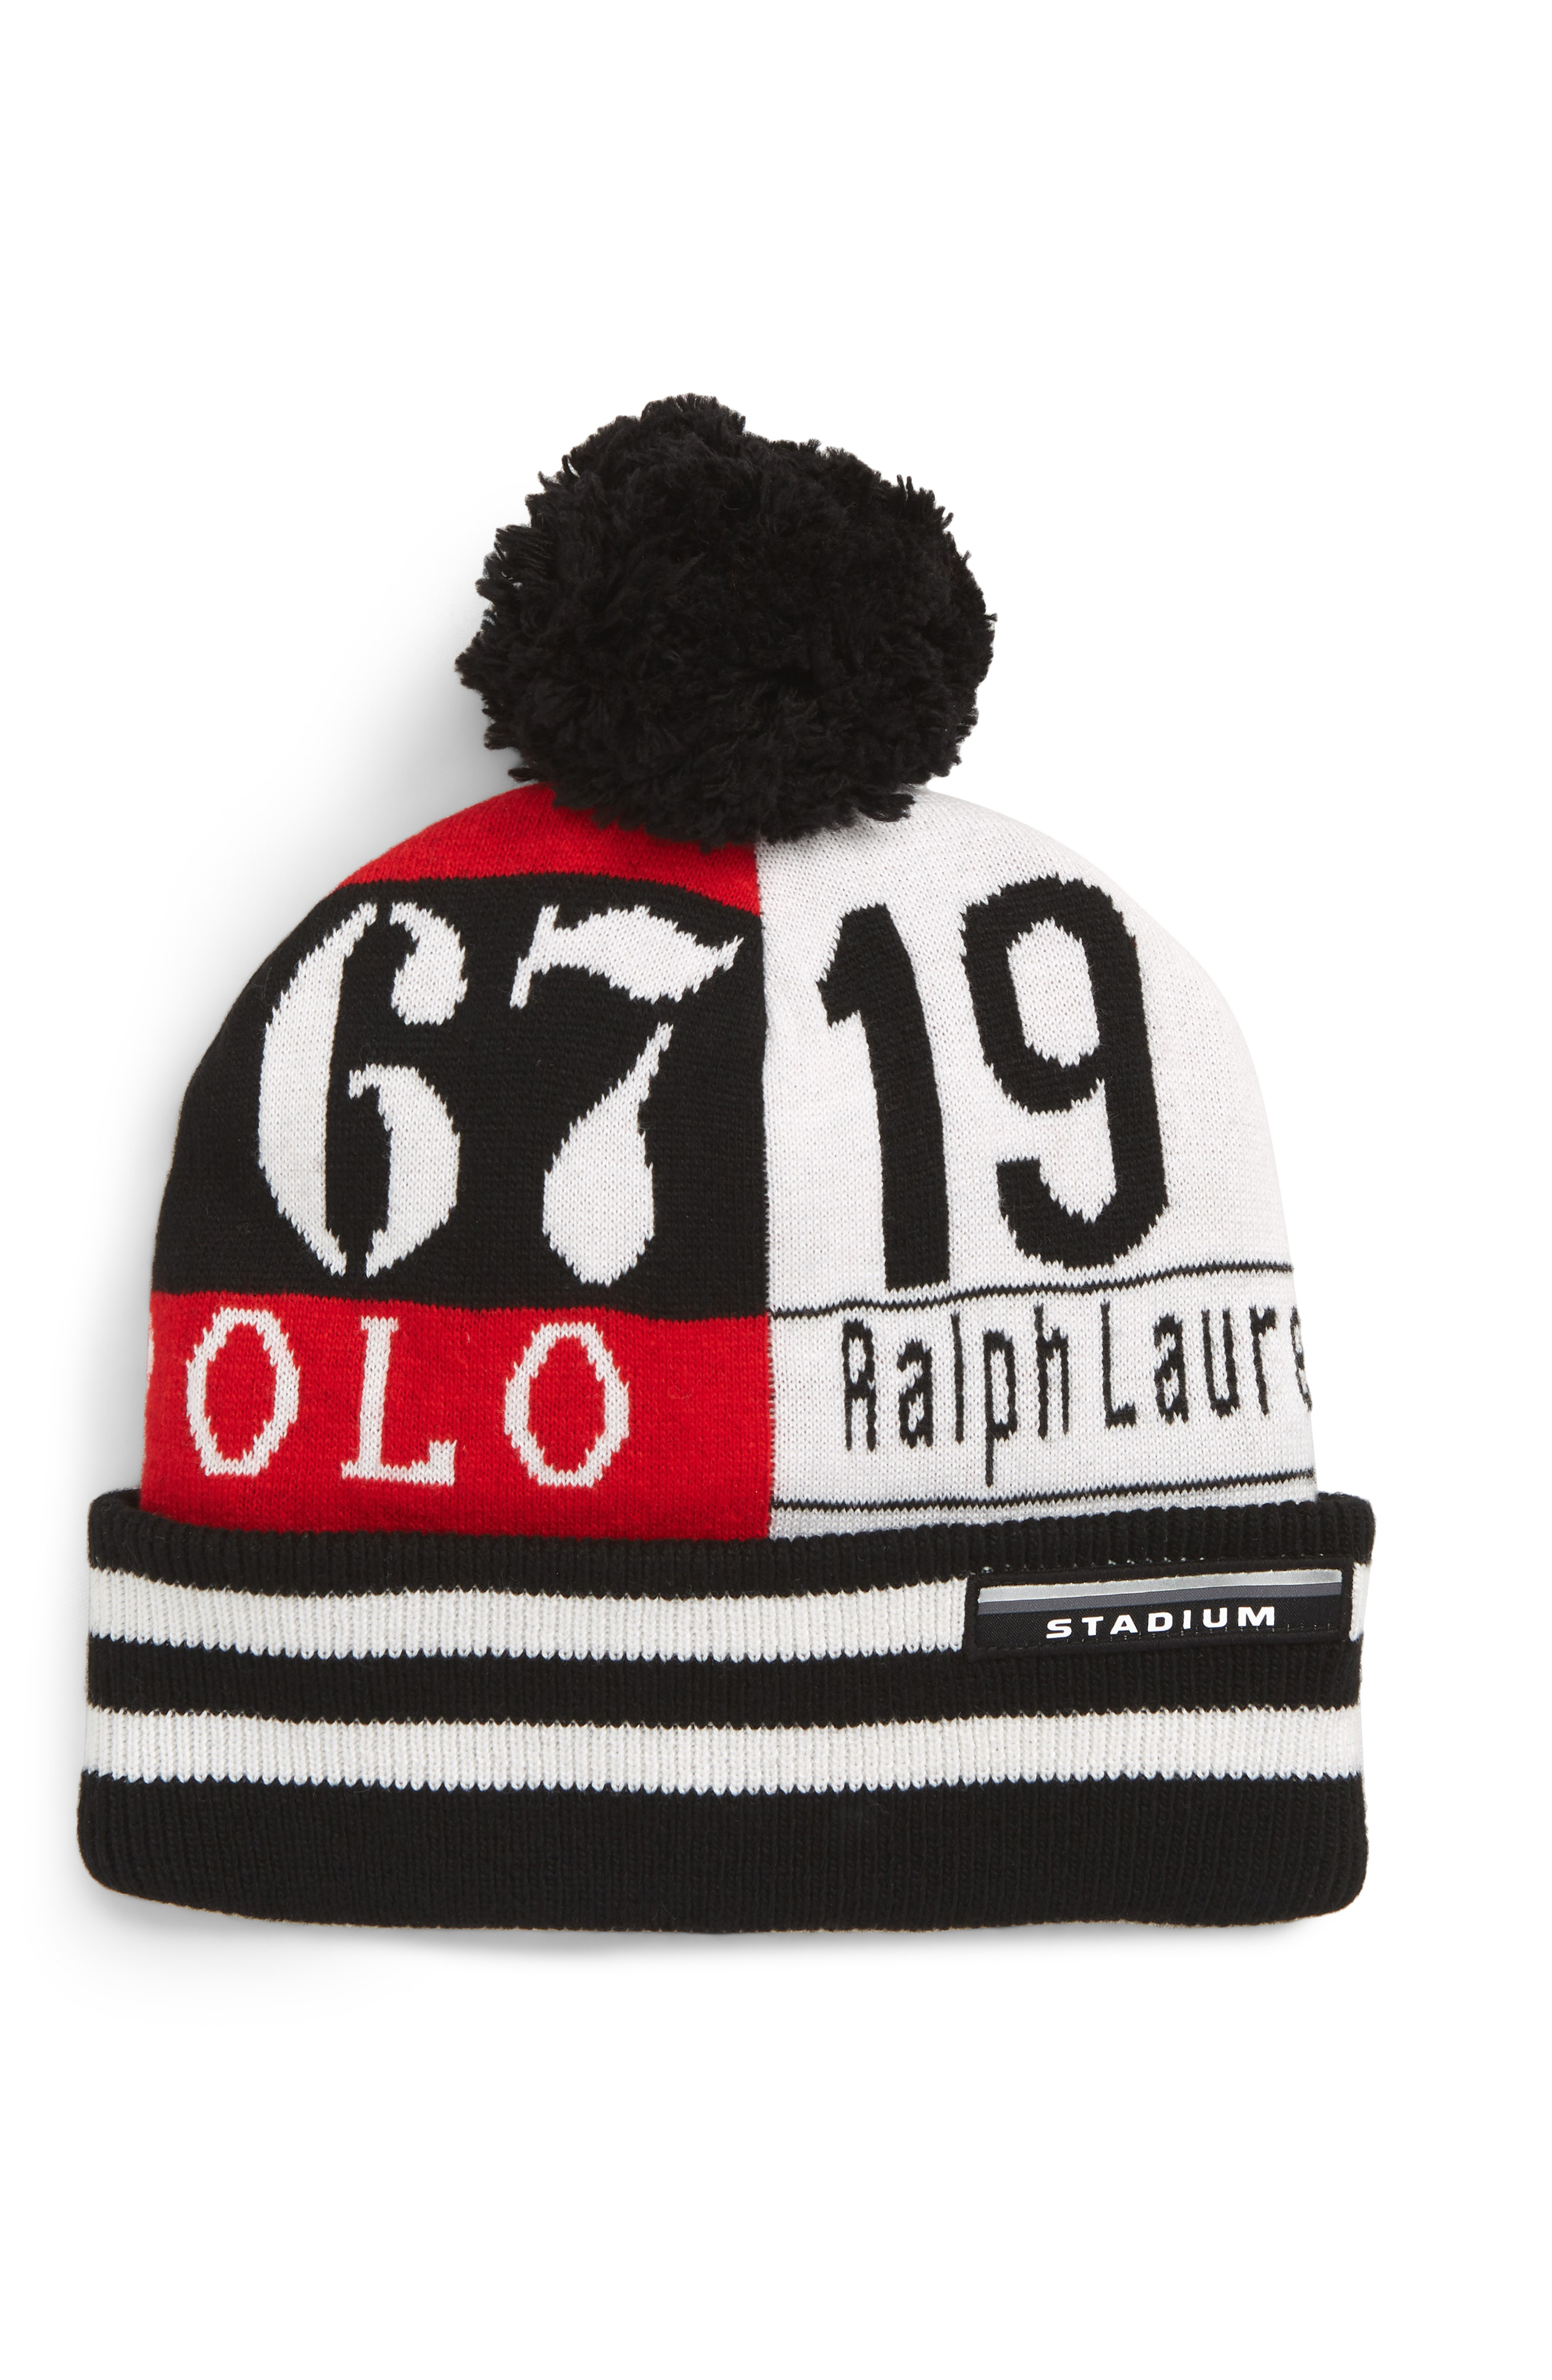 4af4196a86f2a Polo Ralph Lauren Rl67 Pom Beanie - Black In Black  Red